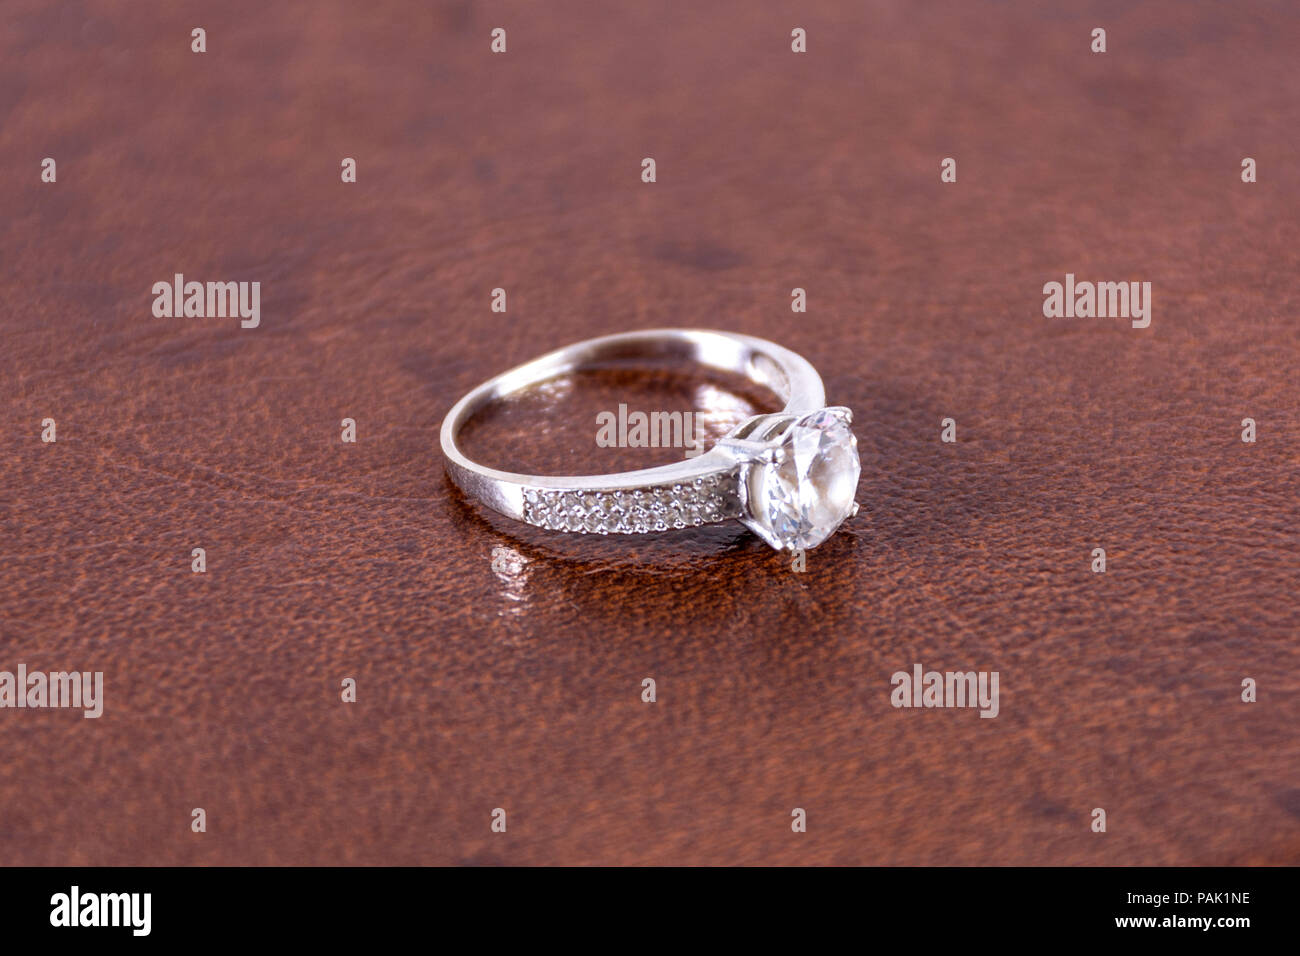 Diamond Silver Engagement Wedding Ring On Leather Brown Blurred And